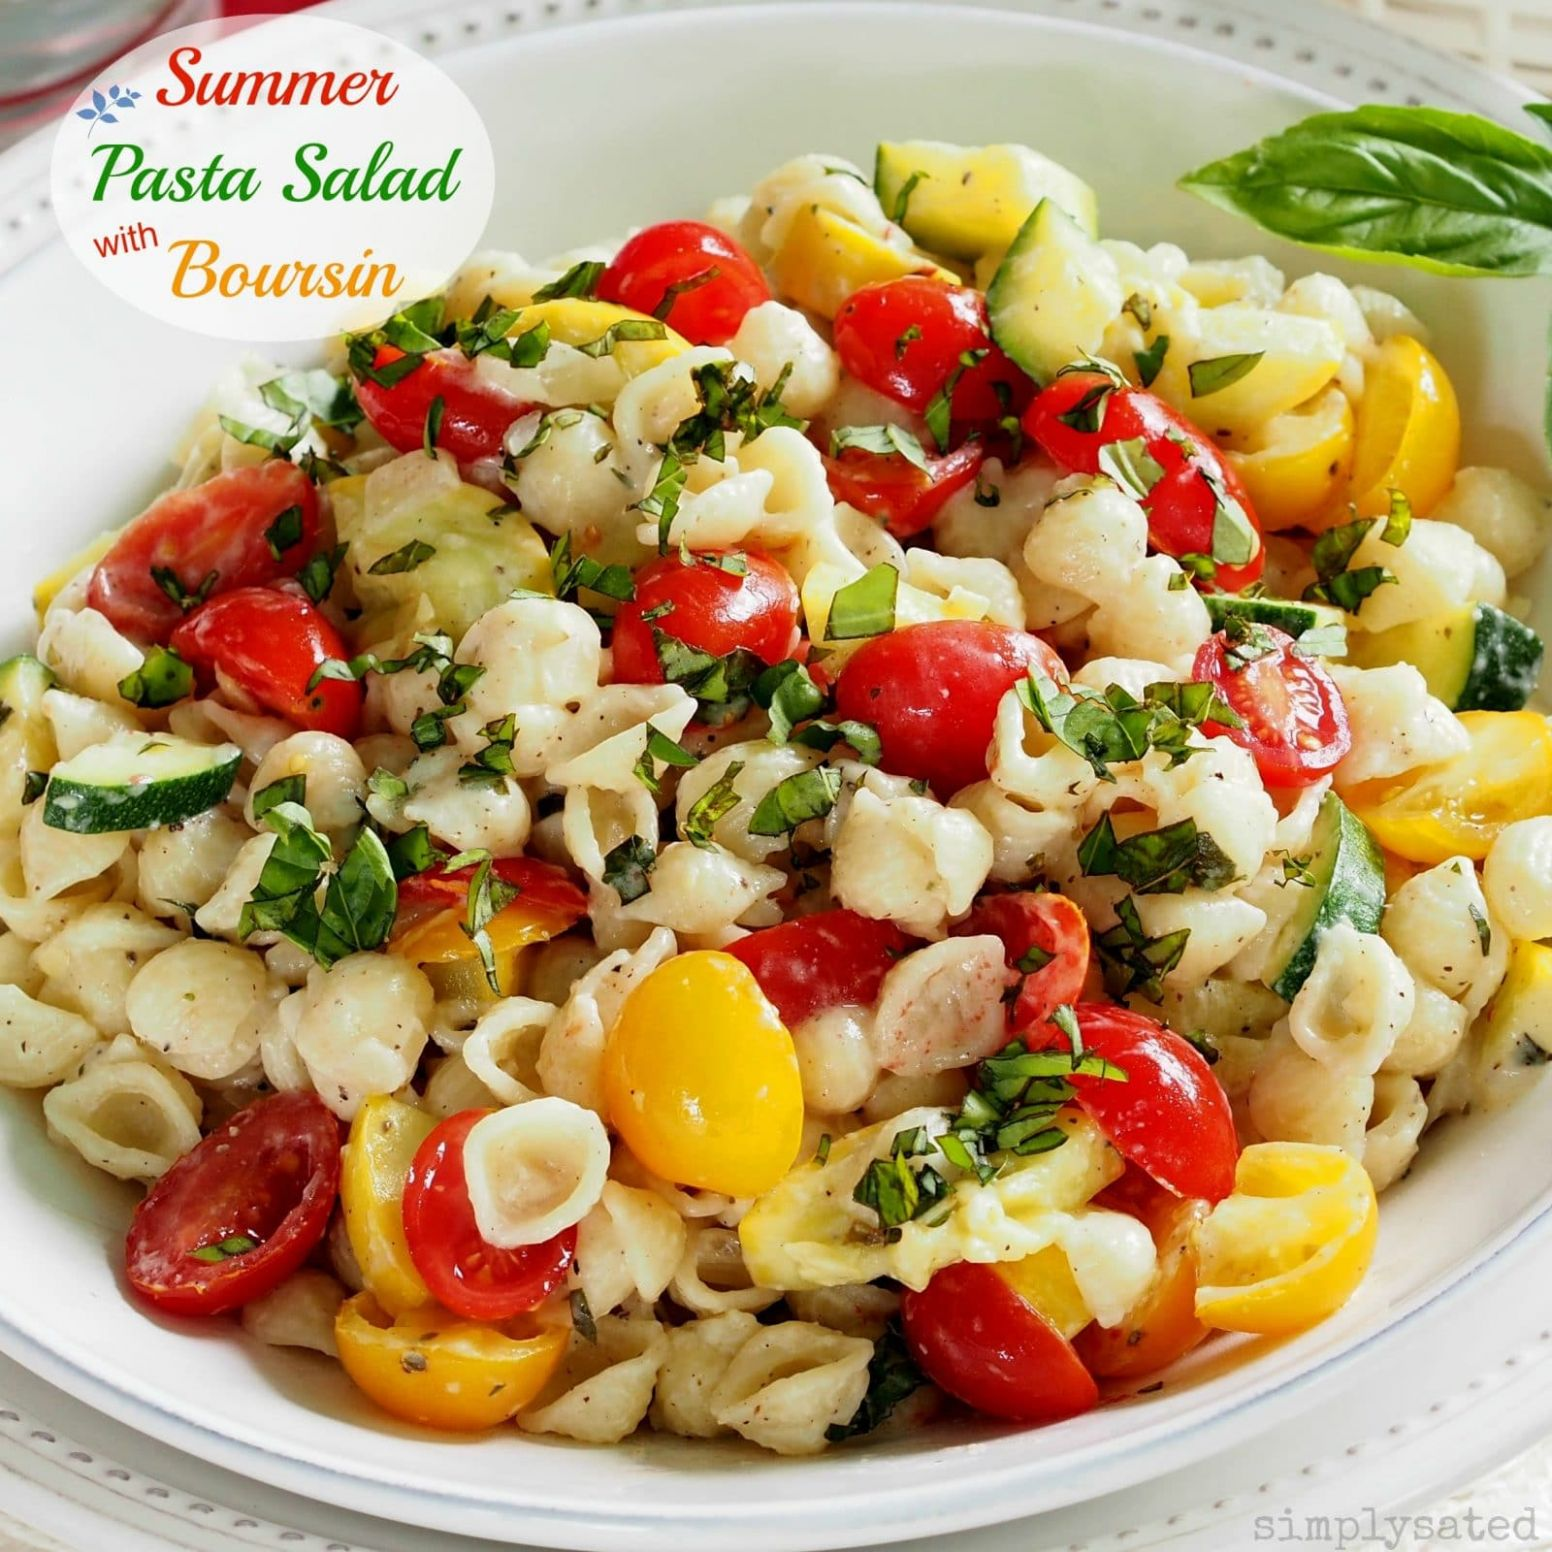 Summer Pasta Salad with Boursin - Summer Recipes Pasta